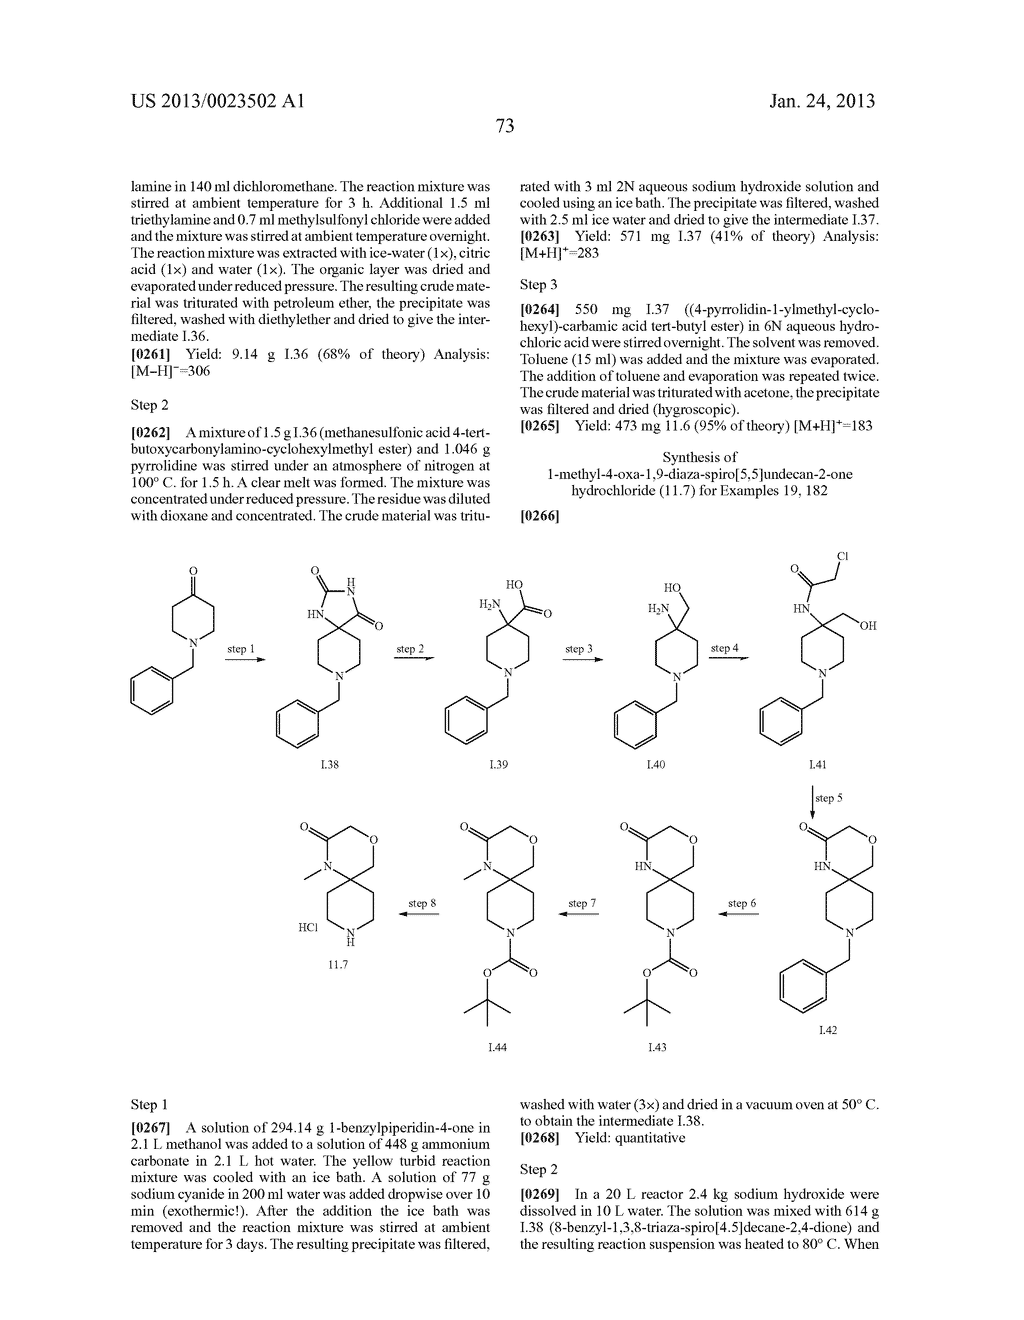 SUBSTITUTED PYRIDINYL-PYRIMIDINES AND THEIR USE AS MEDICAMENTS - diagram, schematic, and image 74